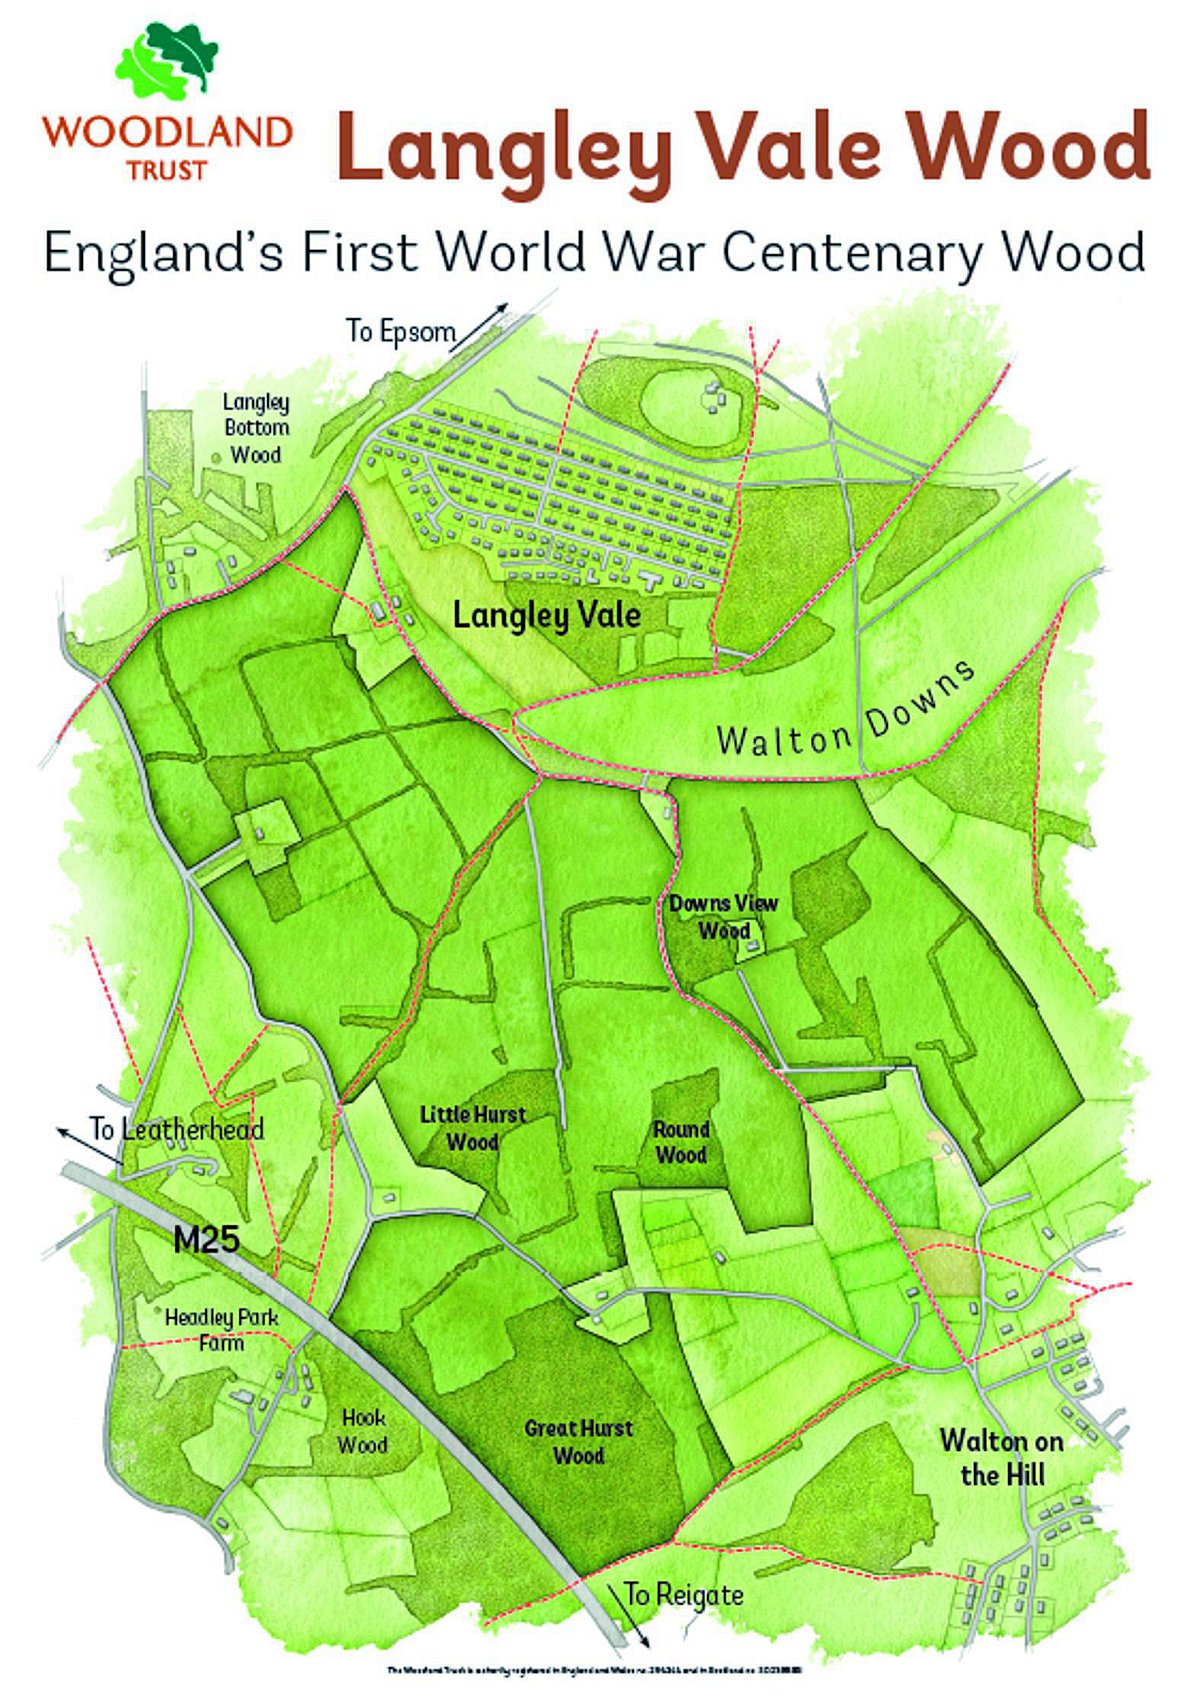 The Woodland Trust plans to create a Centenary Wood at Langley Vale farm